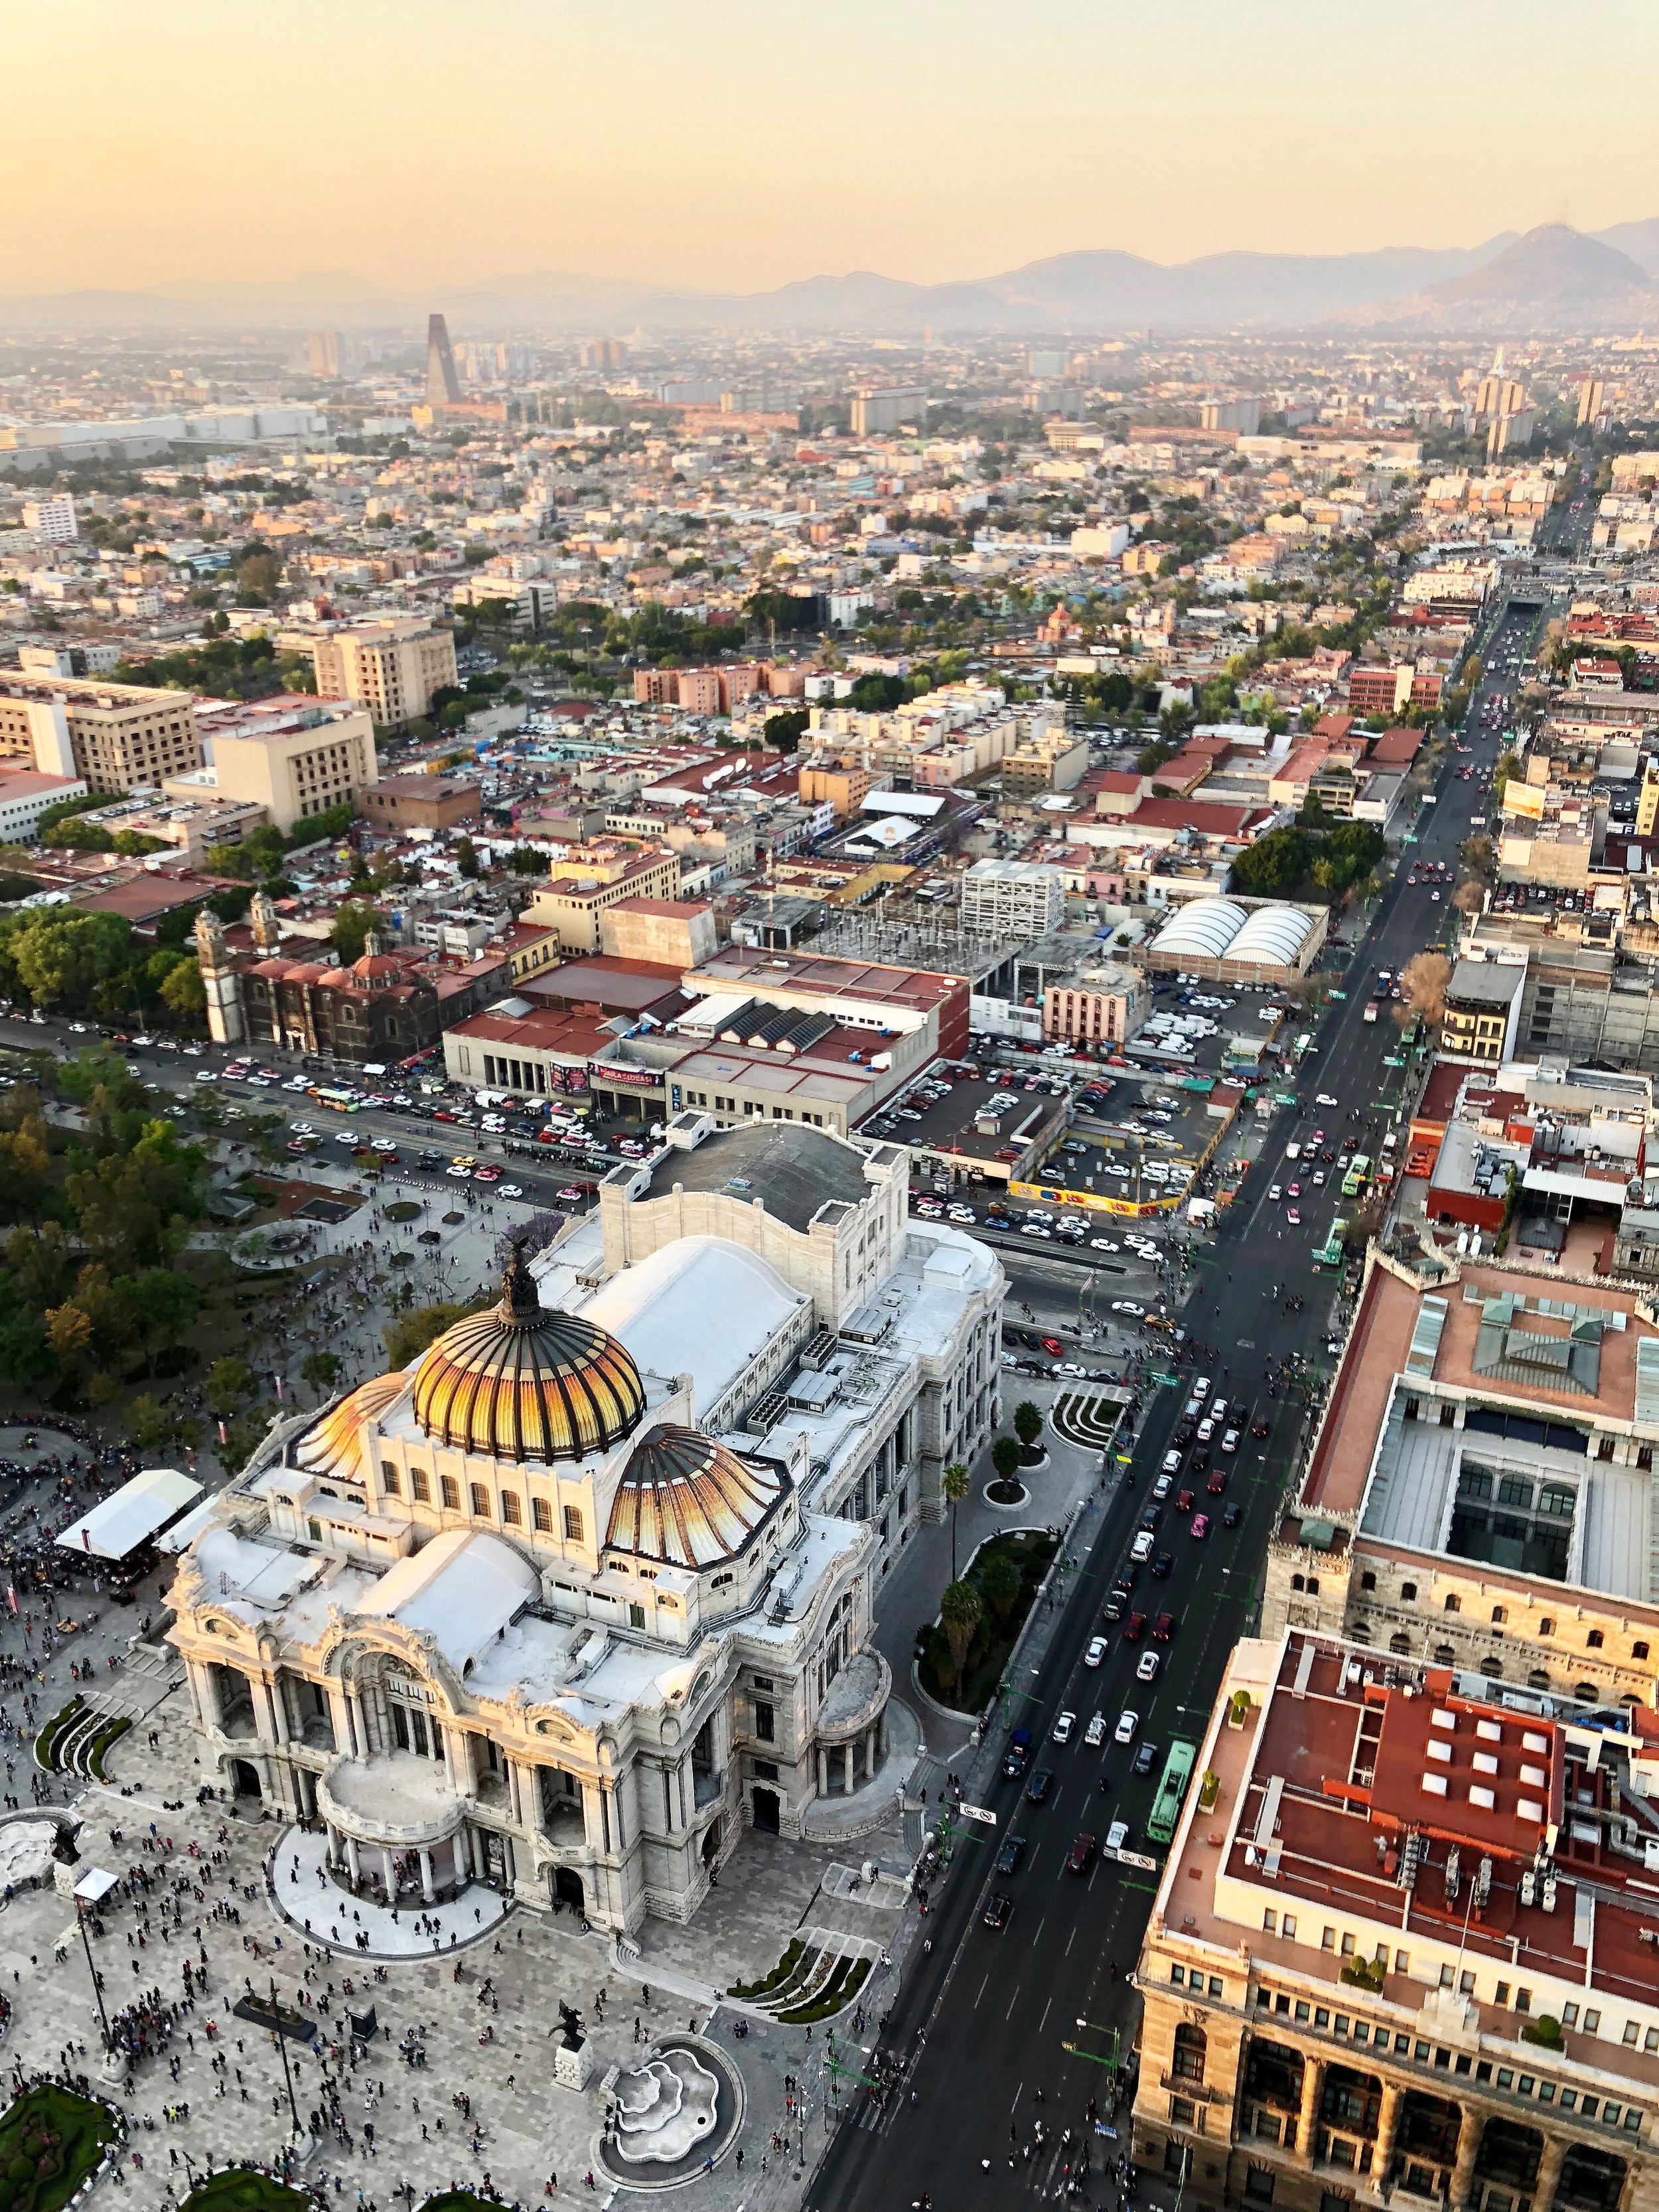 The view from the top of  Torre Latinoamericana